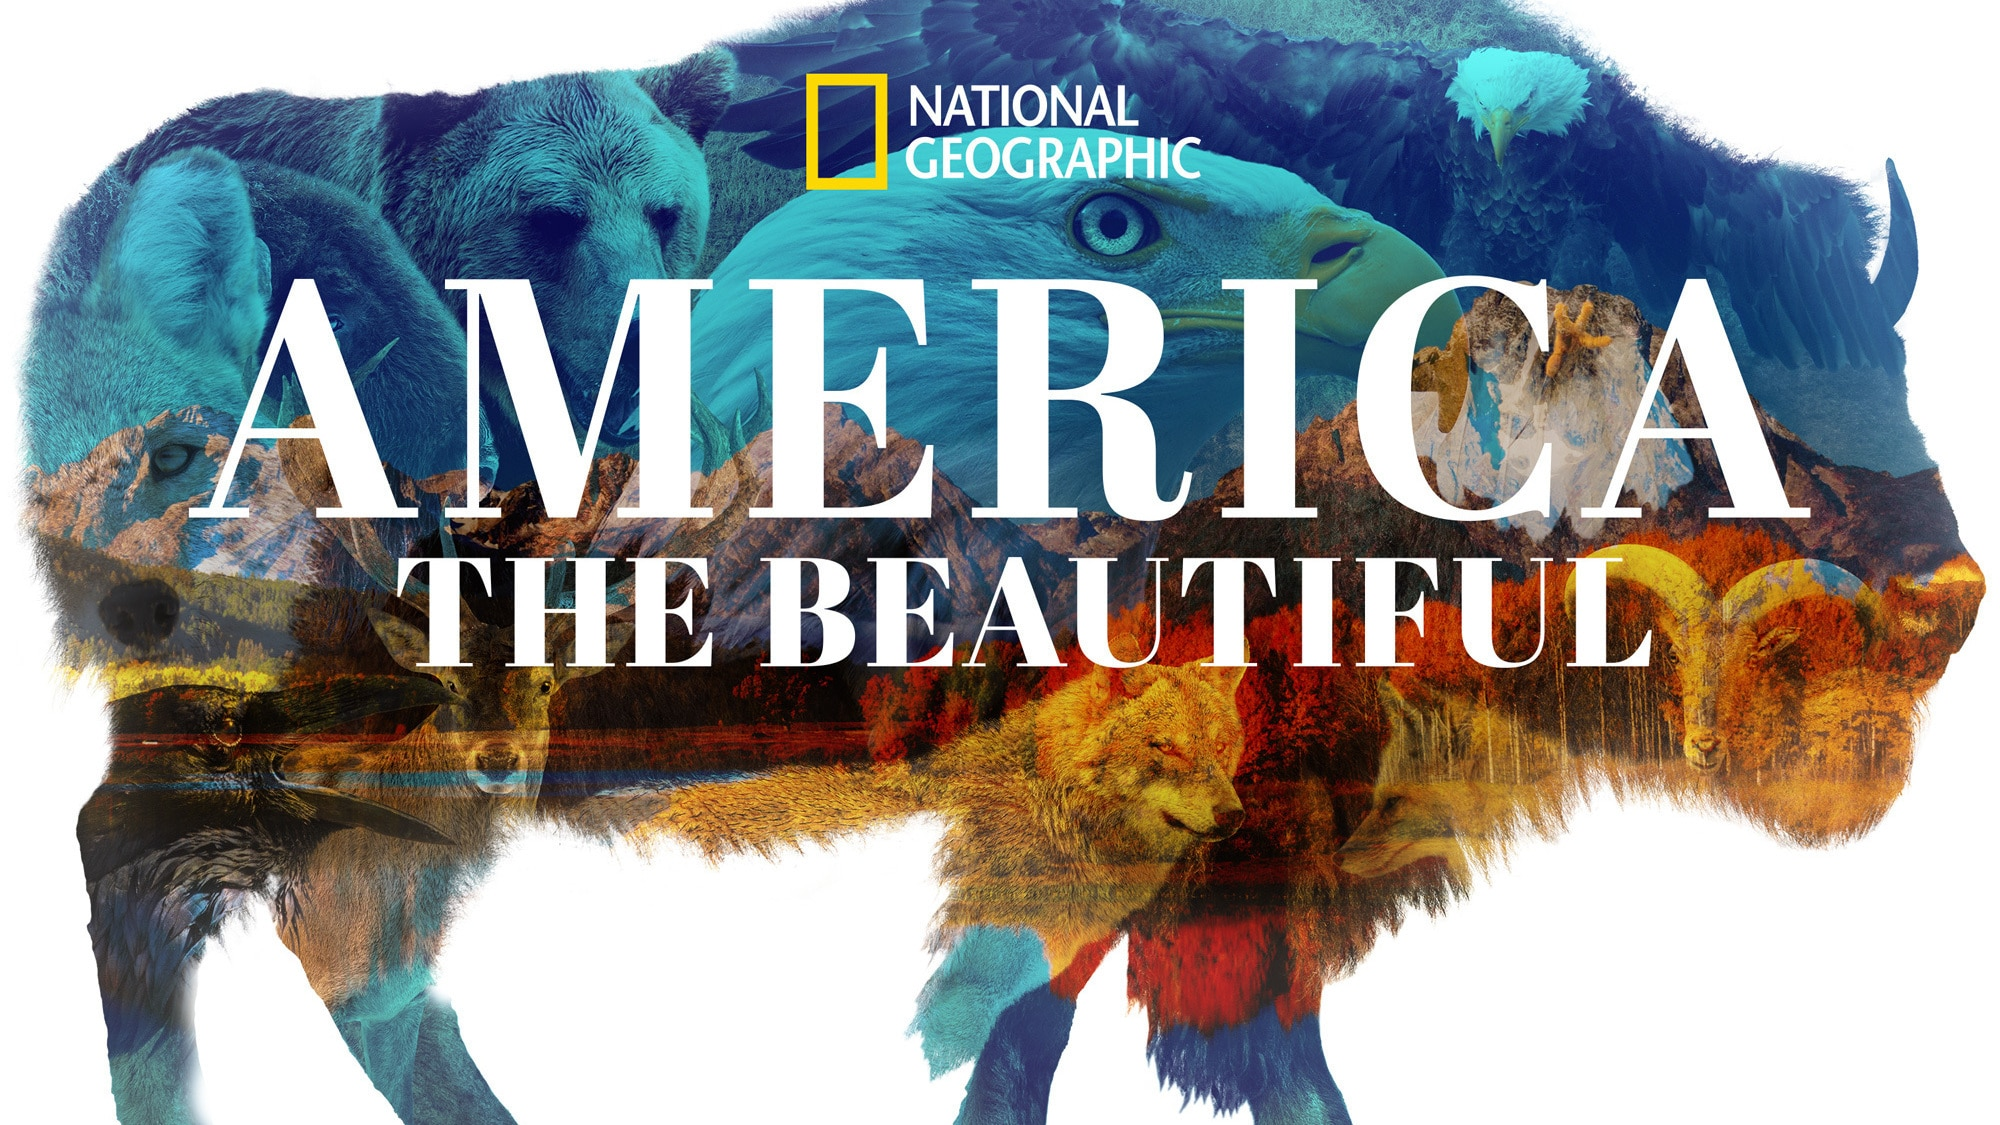 AMERICA THE BEAUTIFUL - It's the land we love and the land we think we know. In AMERICA THE BEAUTIFUL, an ambitious story of North America, you will journey through her visually spectacular regions, led by the iconic species that resonate with us most.   (National Geographic)